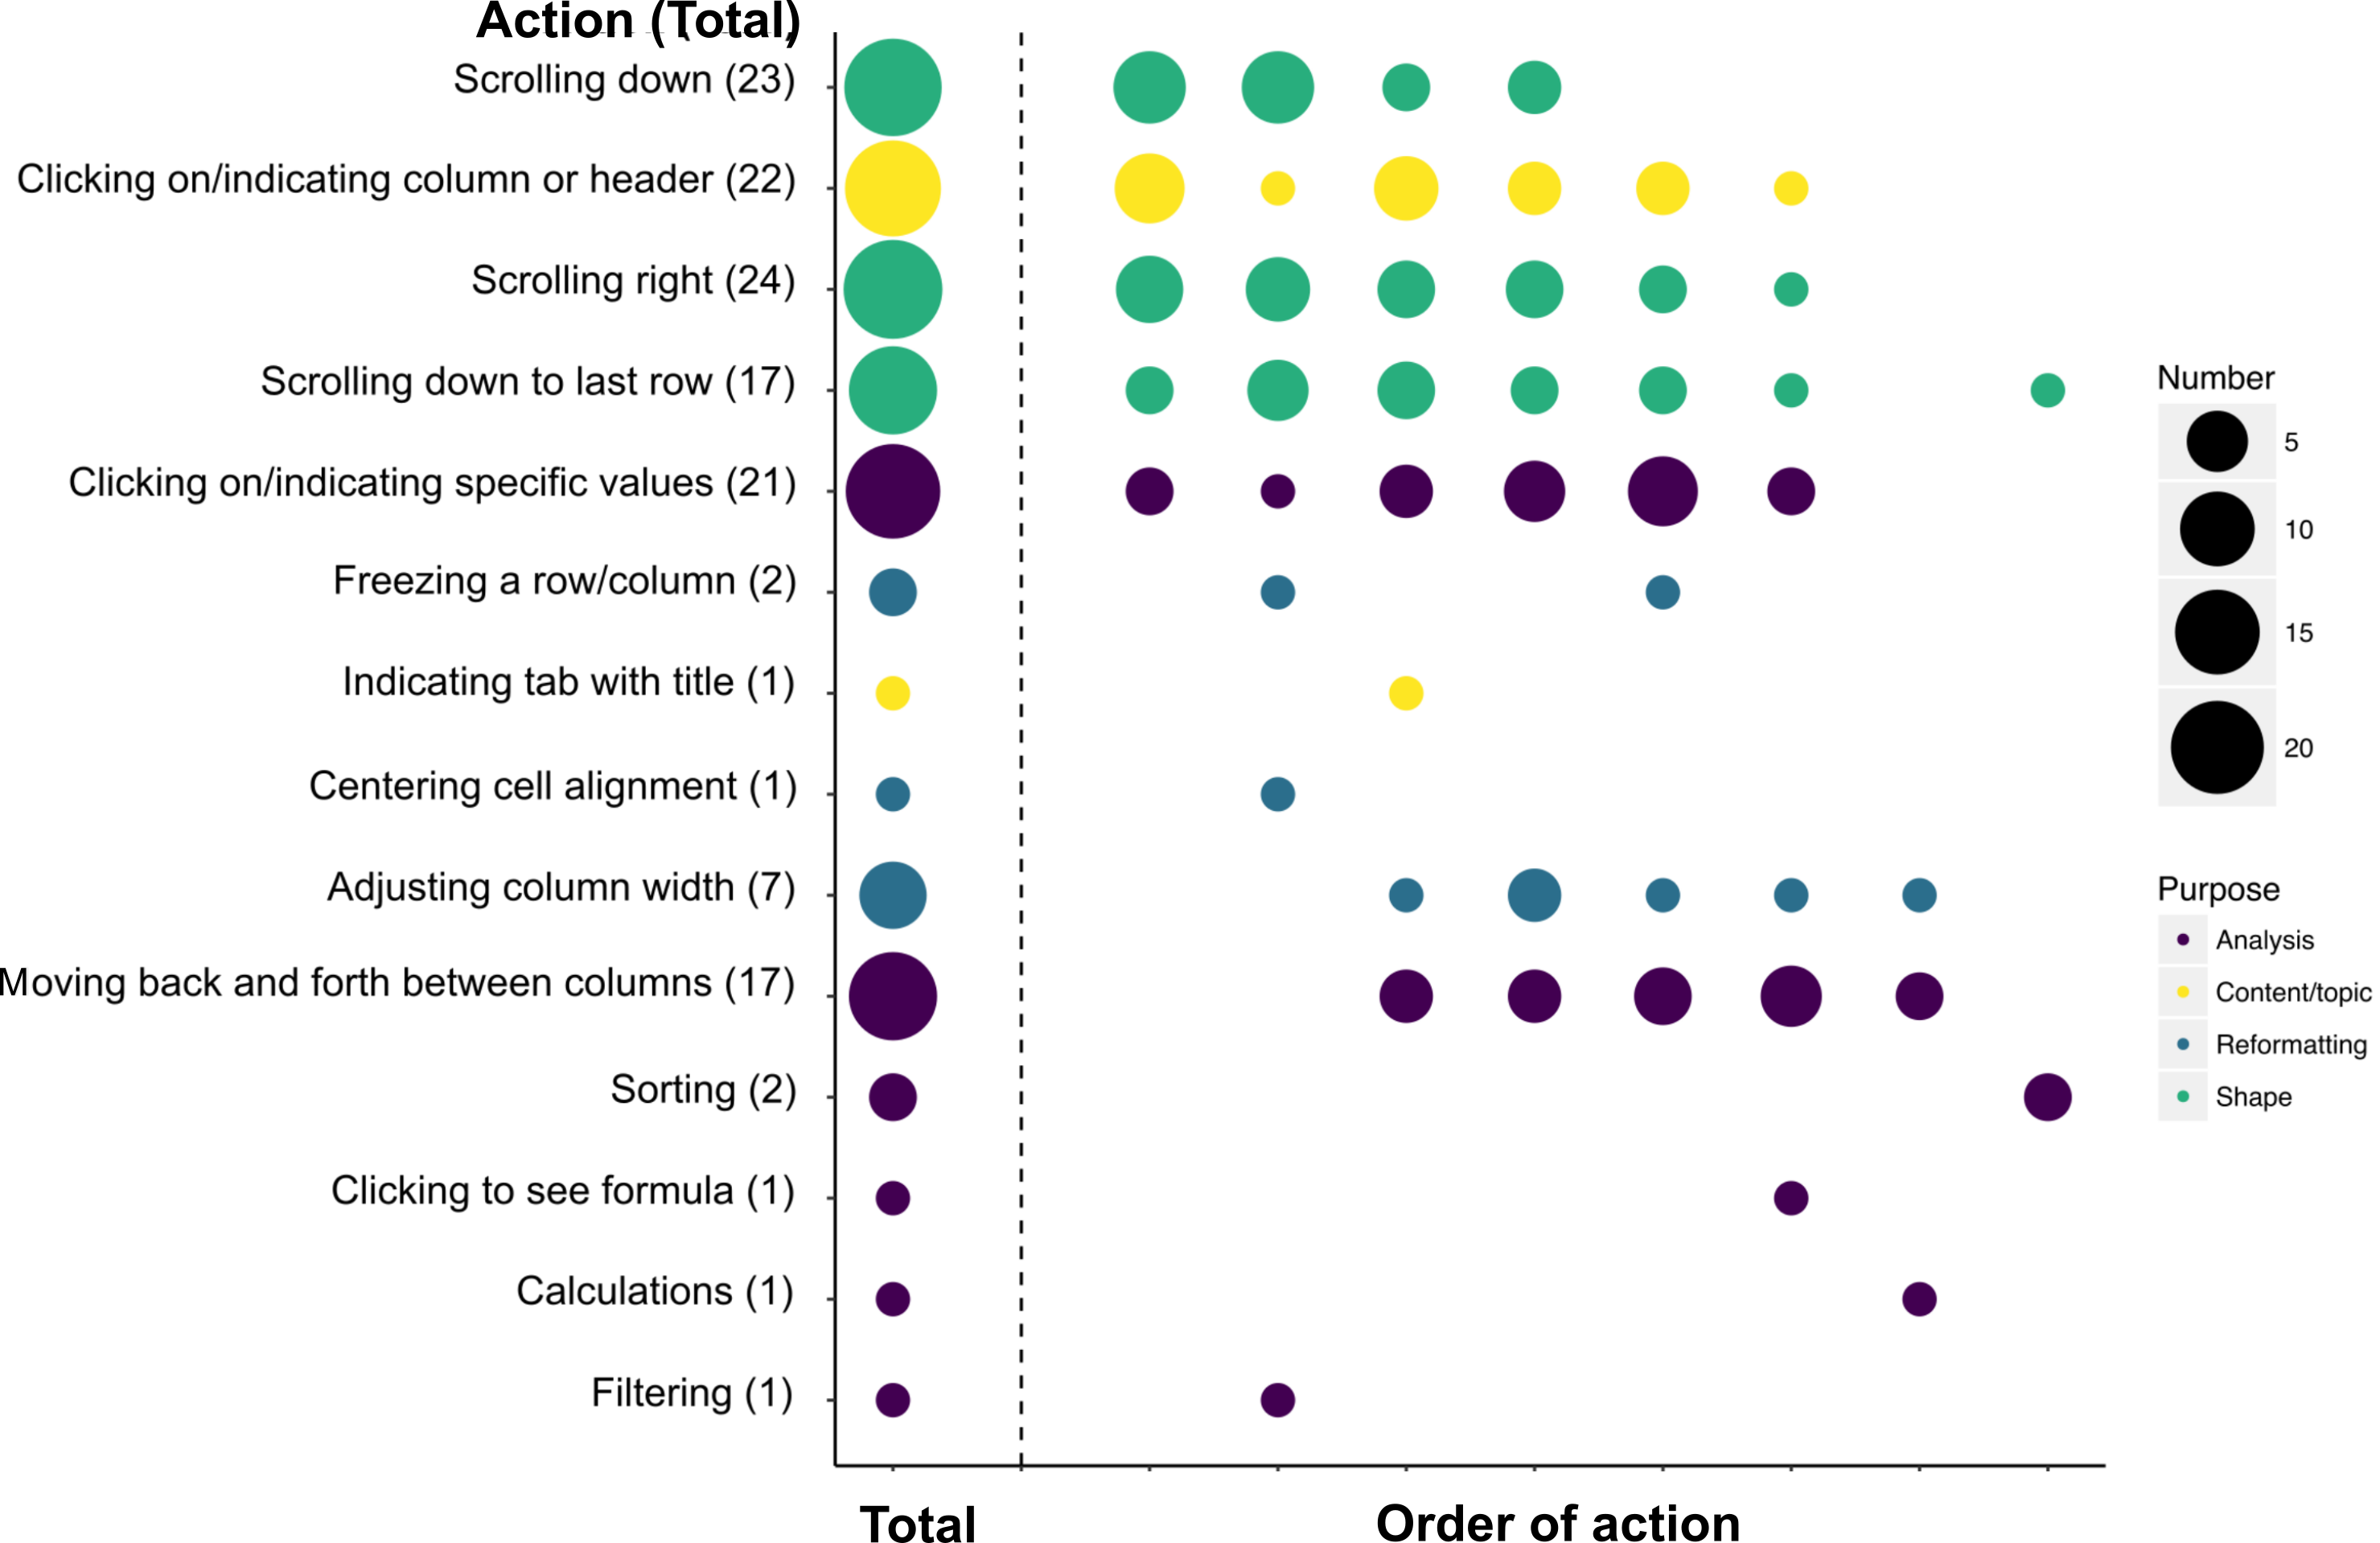 Total number of actions and order of actions observed in screen recordings of the given dataset. Size of circle represents number of participants engaging in activity. Figure is arranged according to which activity most frequently occurred first. Color represents purpose of action.